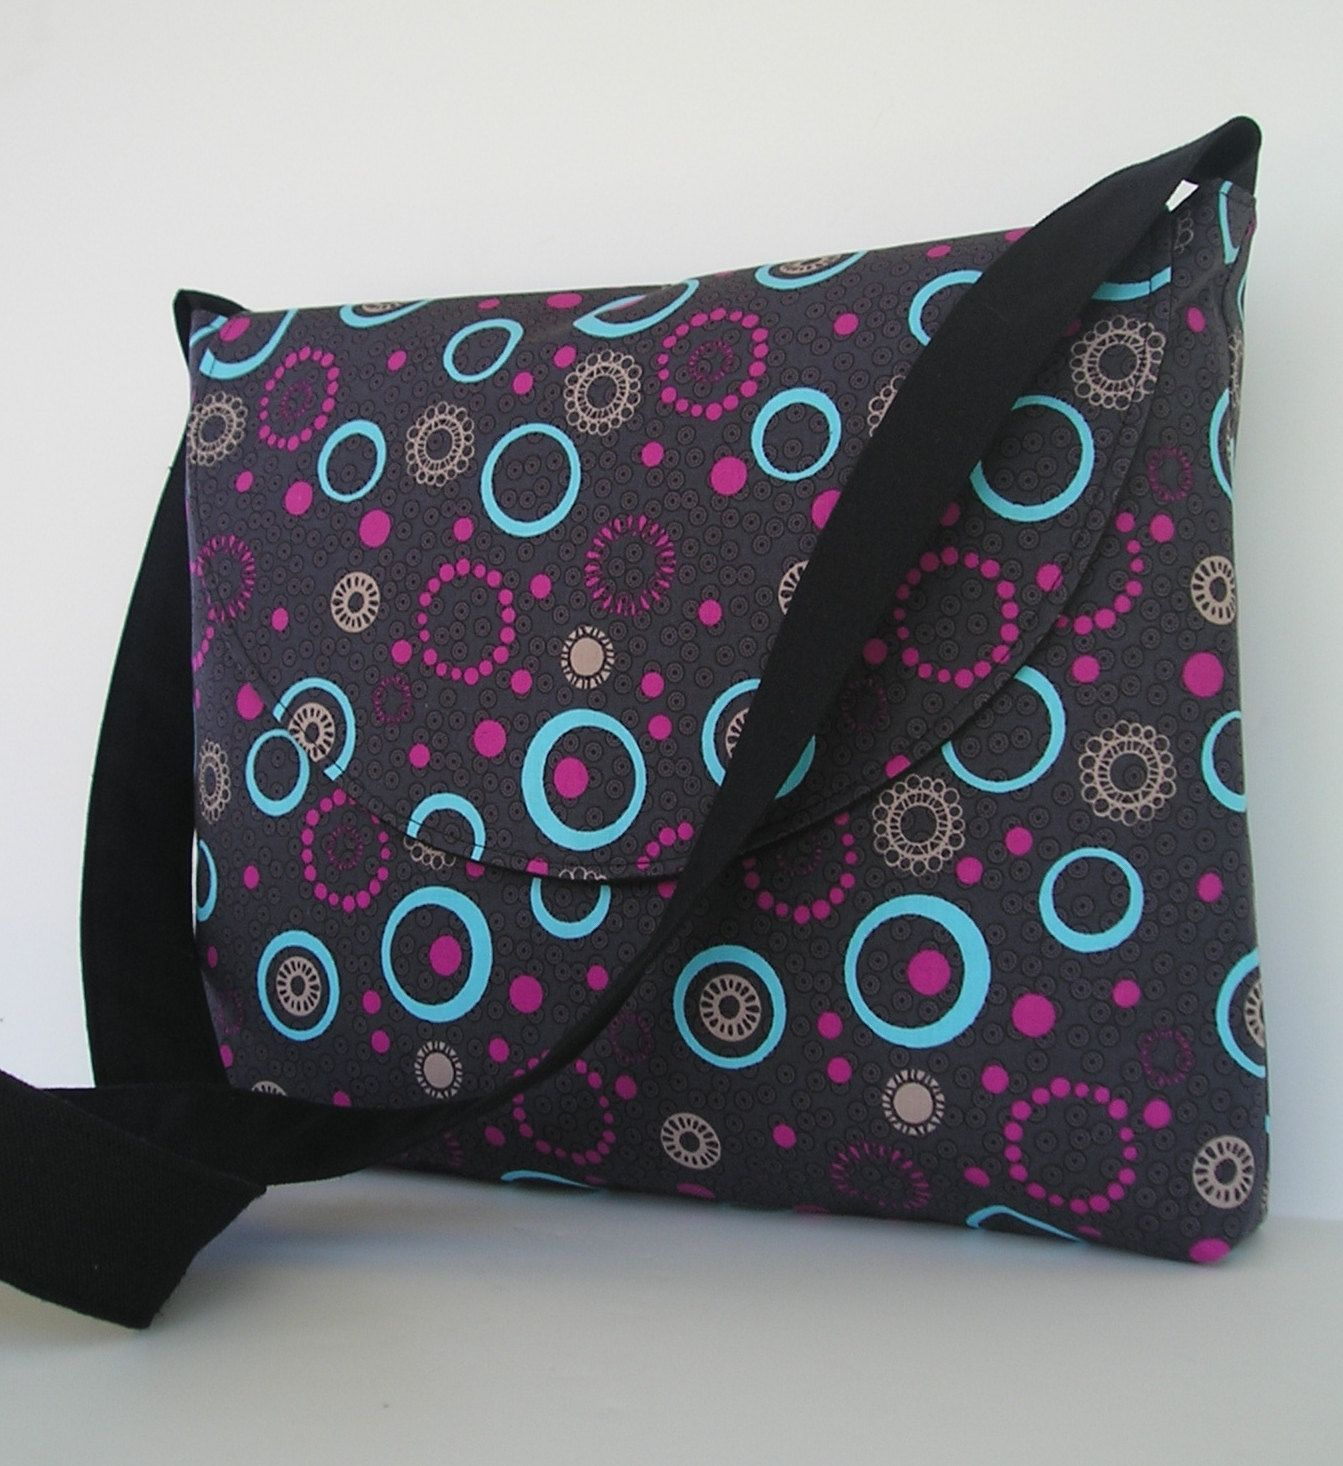 Messenger Bag / Crossbody Bag / iPad / Laptop / Diaper Bag in Circle Design. $30.00, via Etsy.